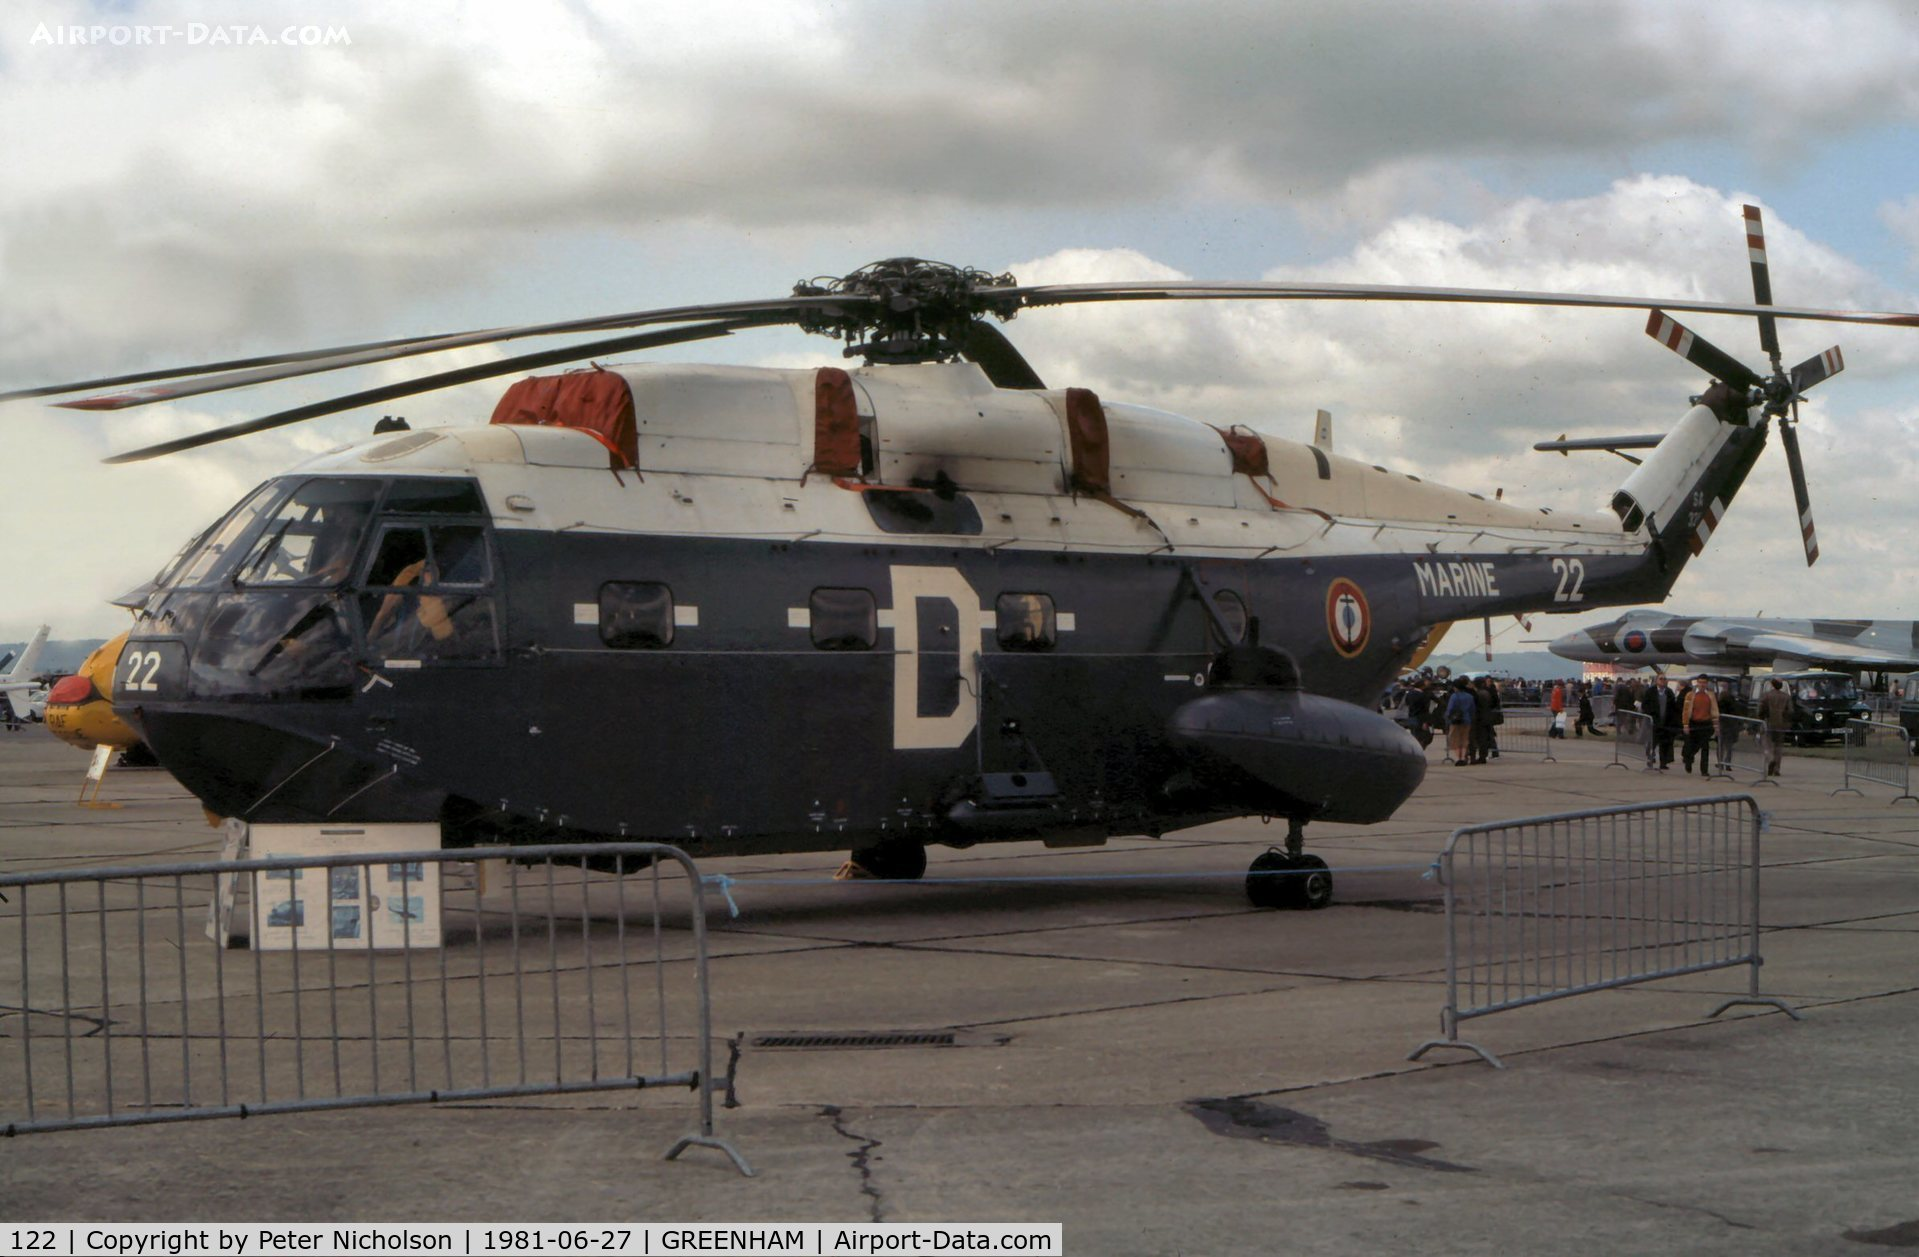 122, Aérospatiale SA-321G Super Frelon C/N 122, Super Frelon of French Aeronavale's 32 Flotille at the 1981 Intnl Air Tattoo at RAF Greenham Common.